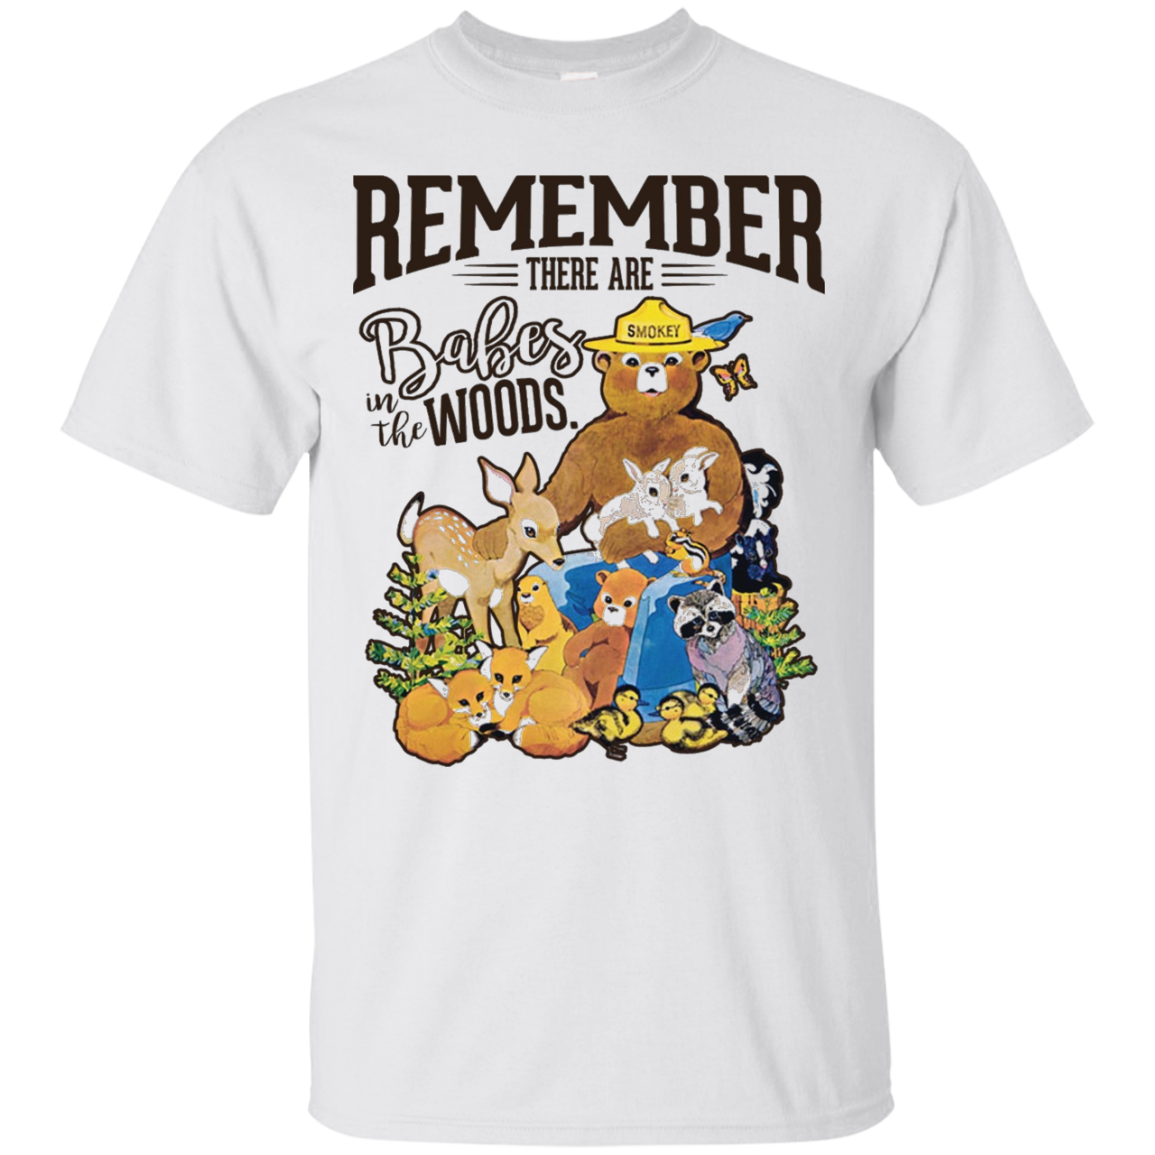 REMEMBER THERE ARE BABES IN THE WOODS Tees Smokey bear Custom Ultra Cotton T-Shirt / White / XXX-Large